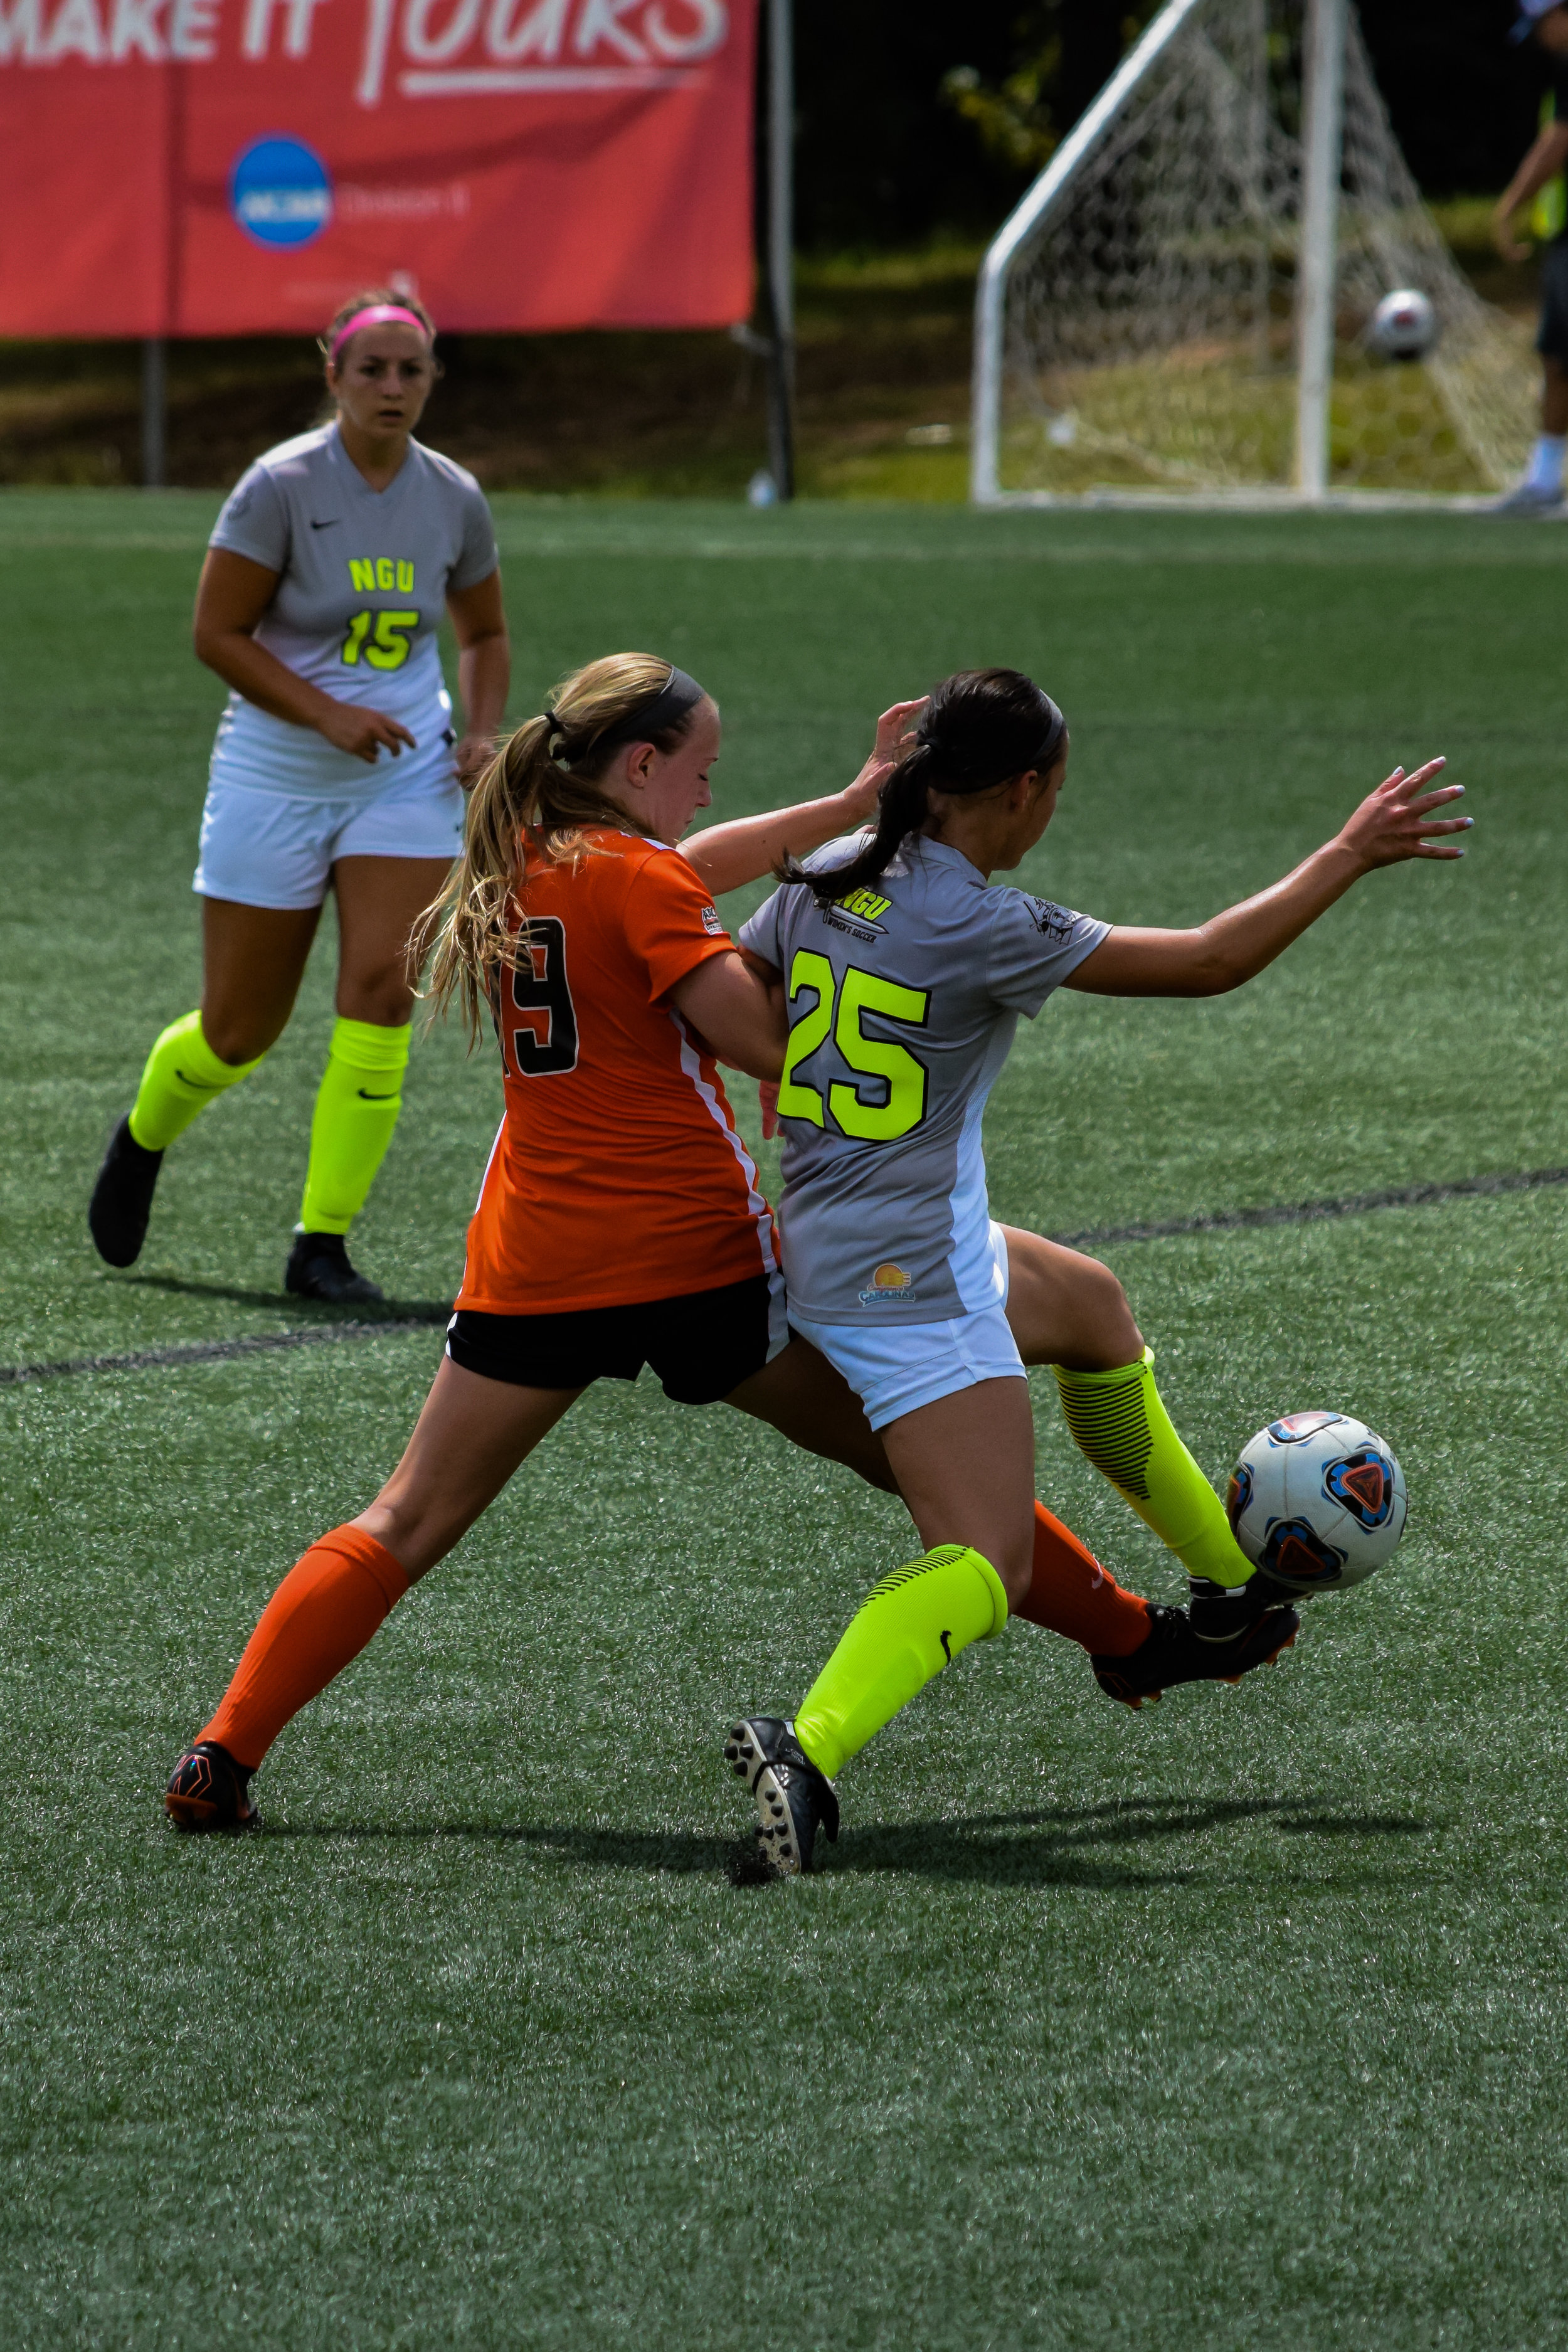 #25 Natalie Johnson risks falling as she goes to pass the ball to her teammate as #15 Karly Denaburg runs to help.